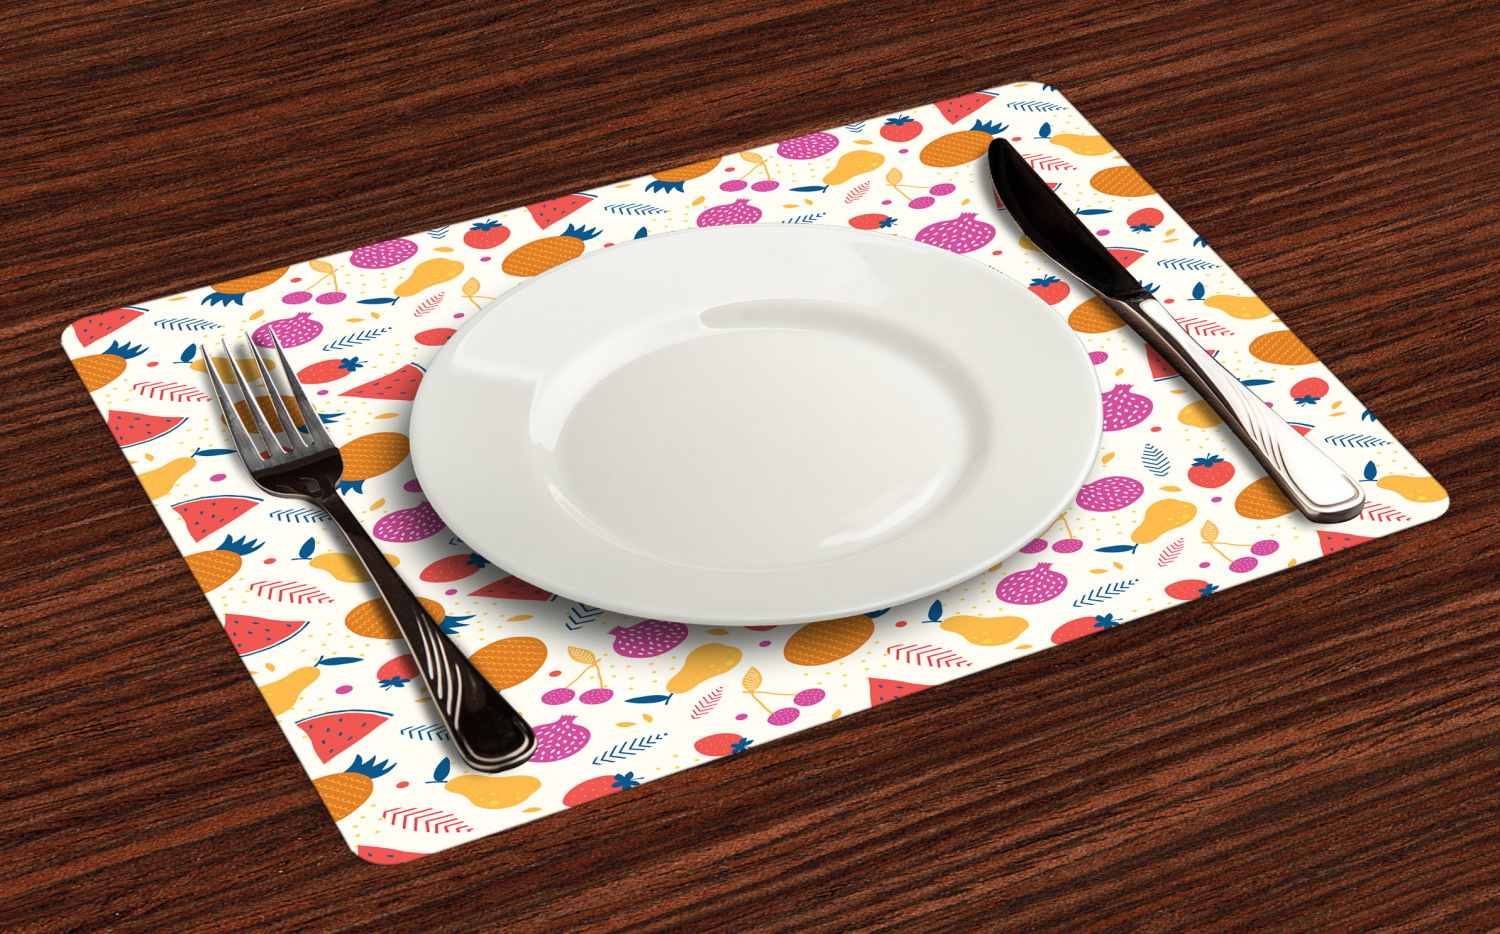 Ambesonne-Fabric-Place-Mats-Set-of-4-Placemats-for-Dining-Room-and-Kitchen-Table thumbnail 61